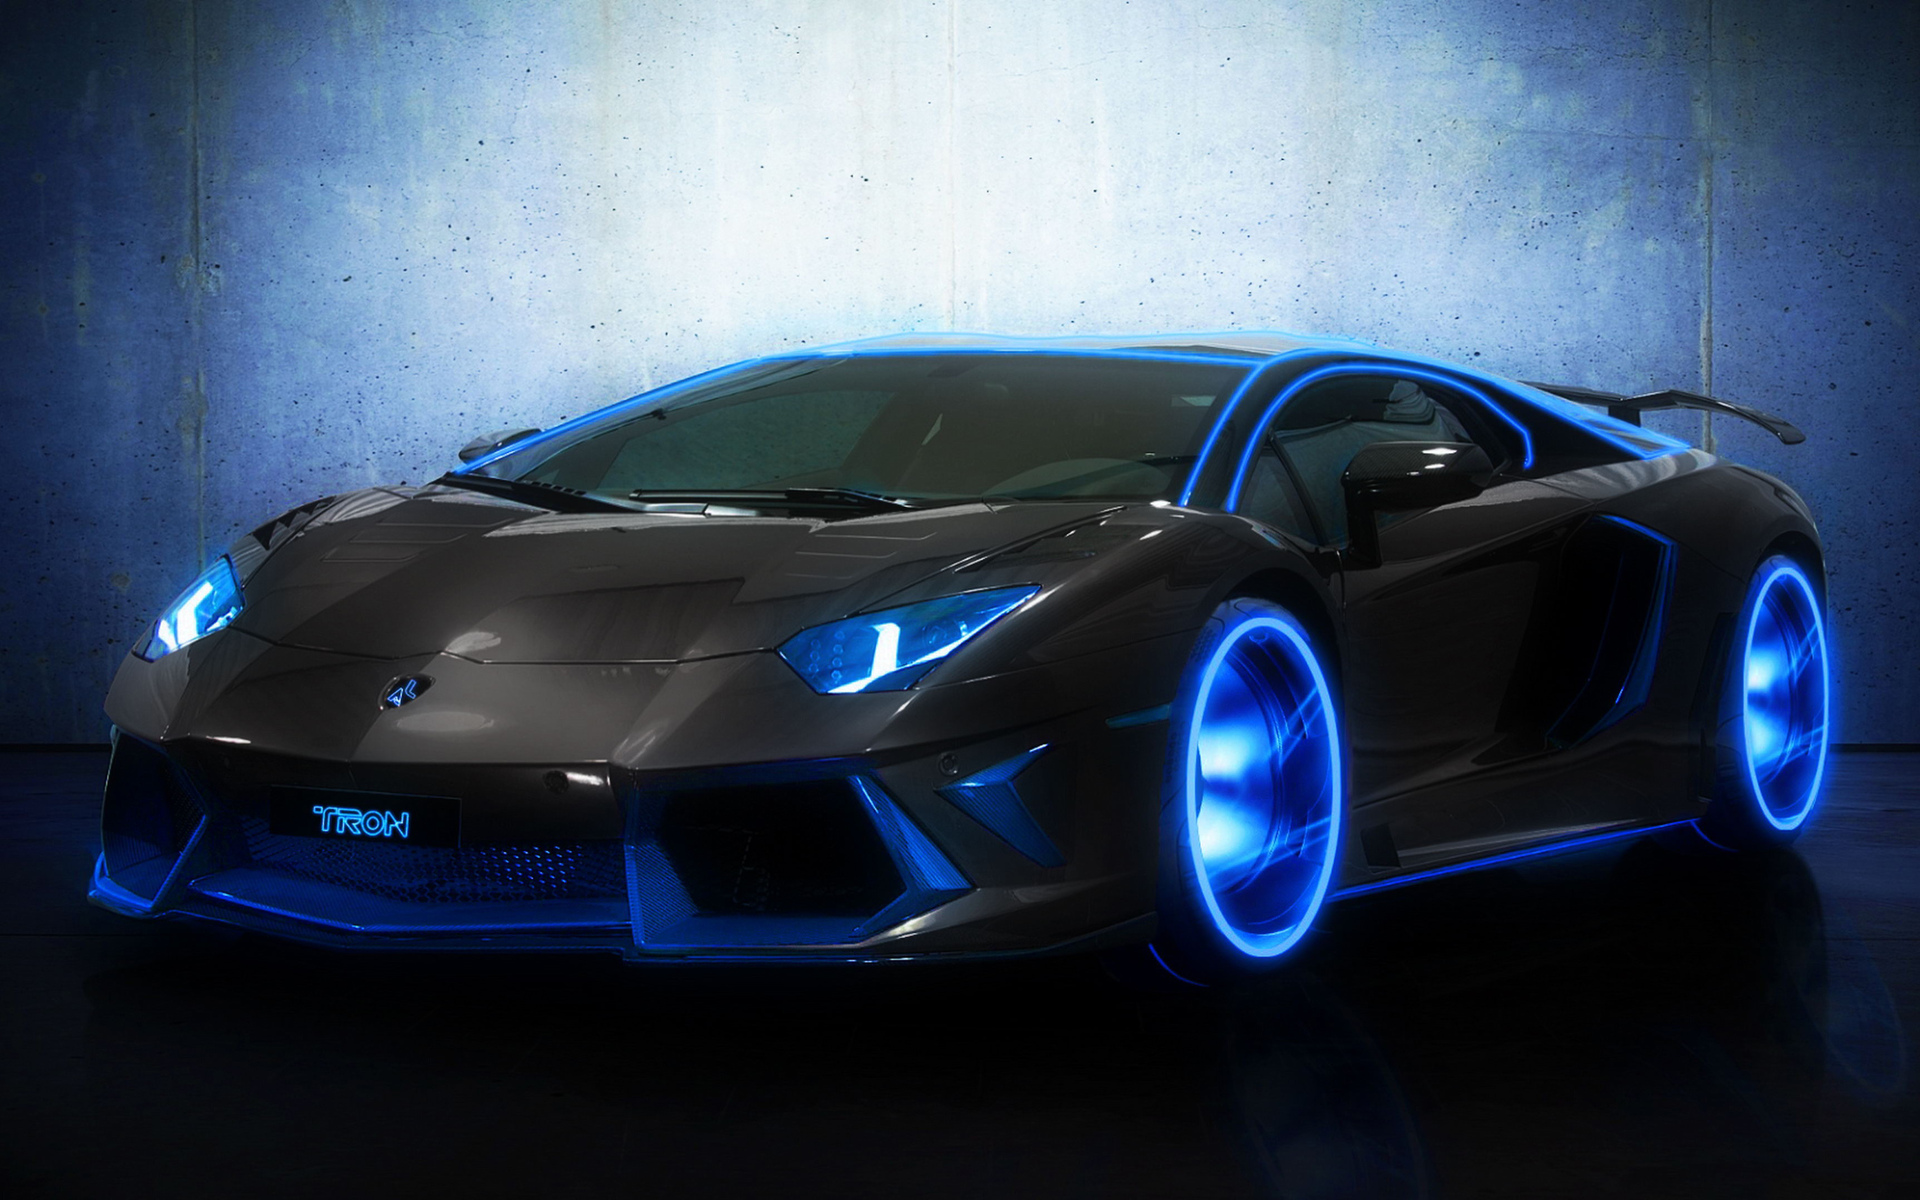 Lamborghini Aventador movies tron manipulation cg digital art neon 1920x1200